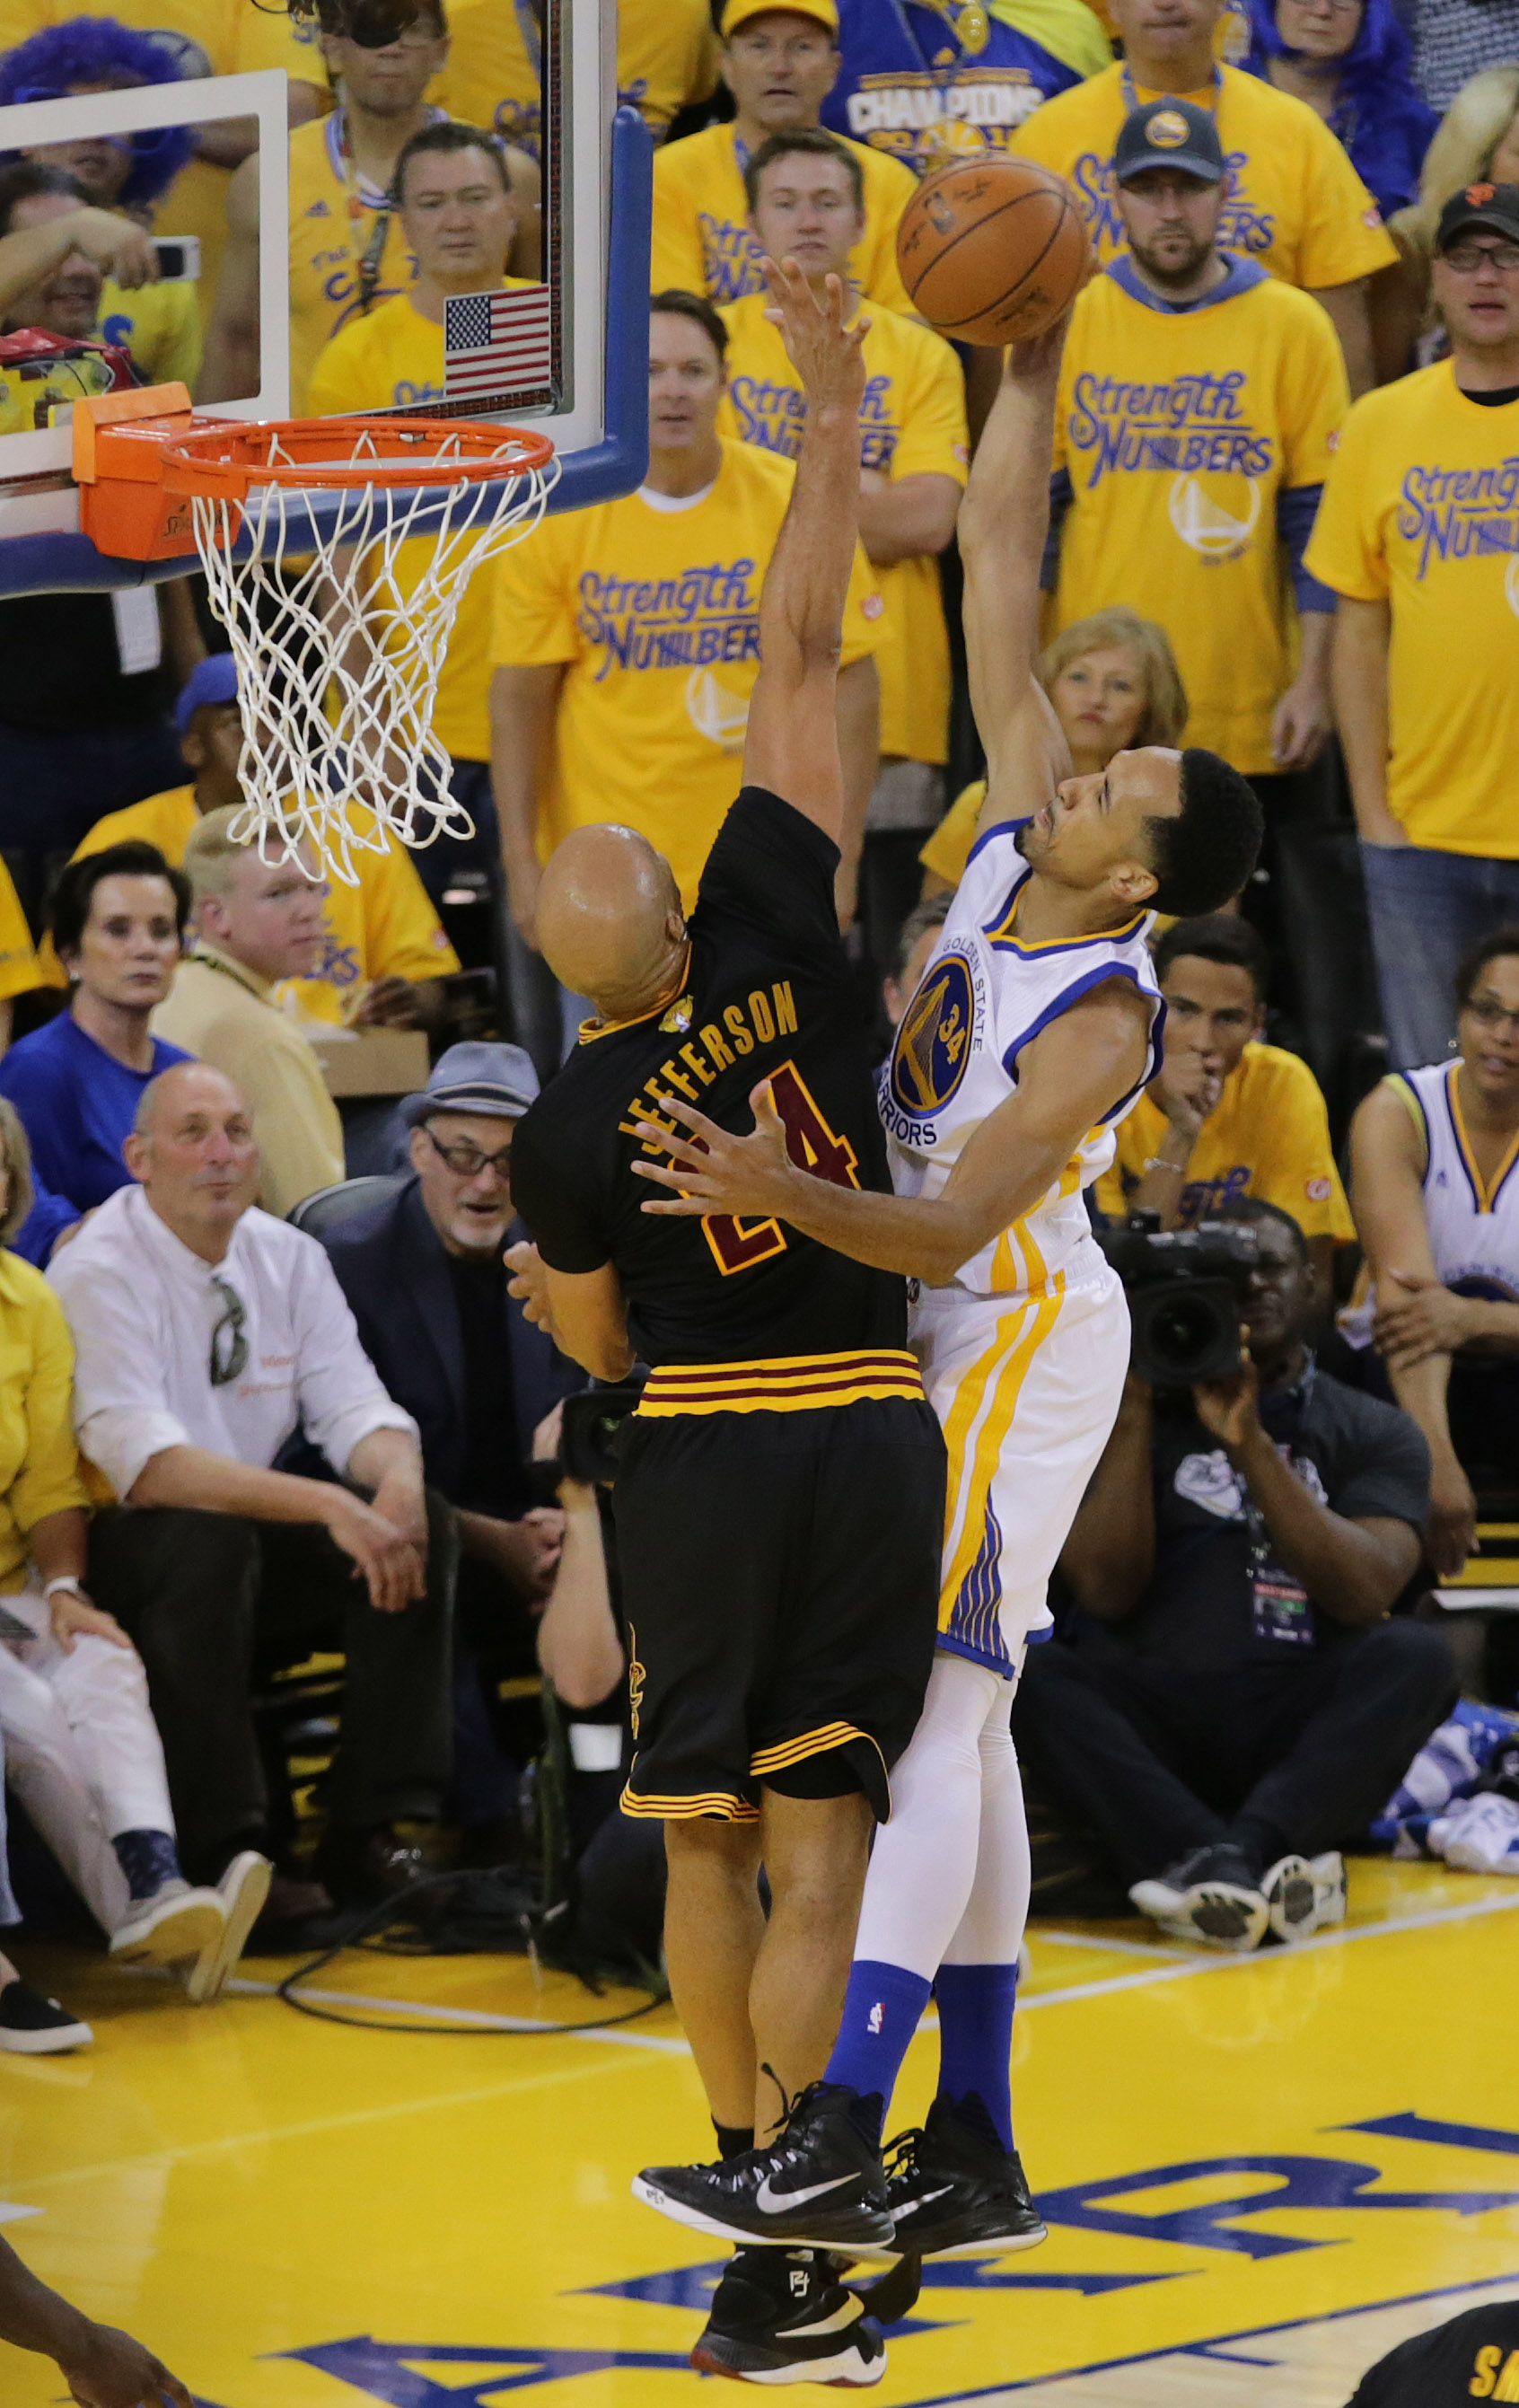 Shaun Livingston's old man game still includes dunking on fools.